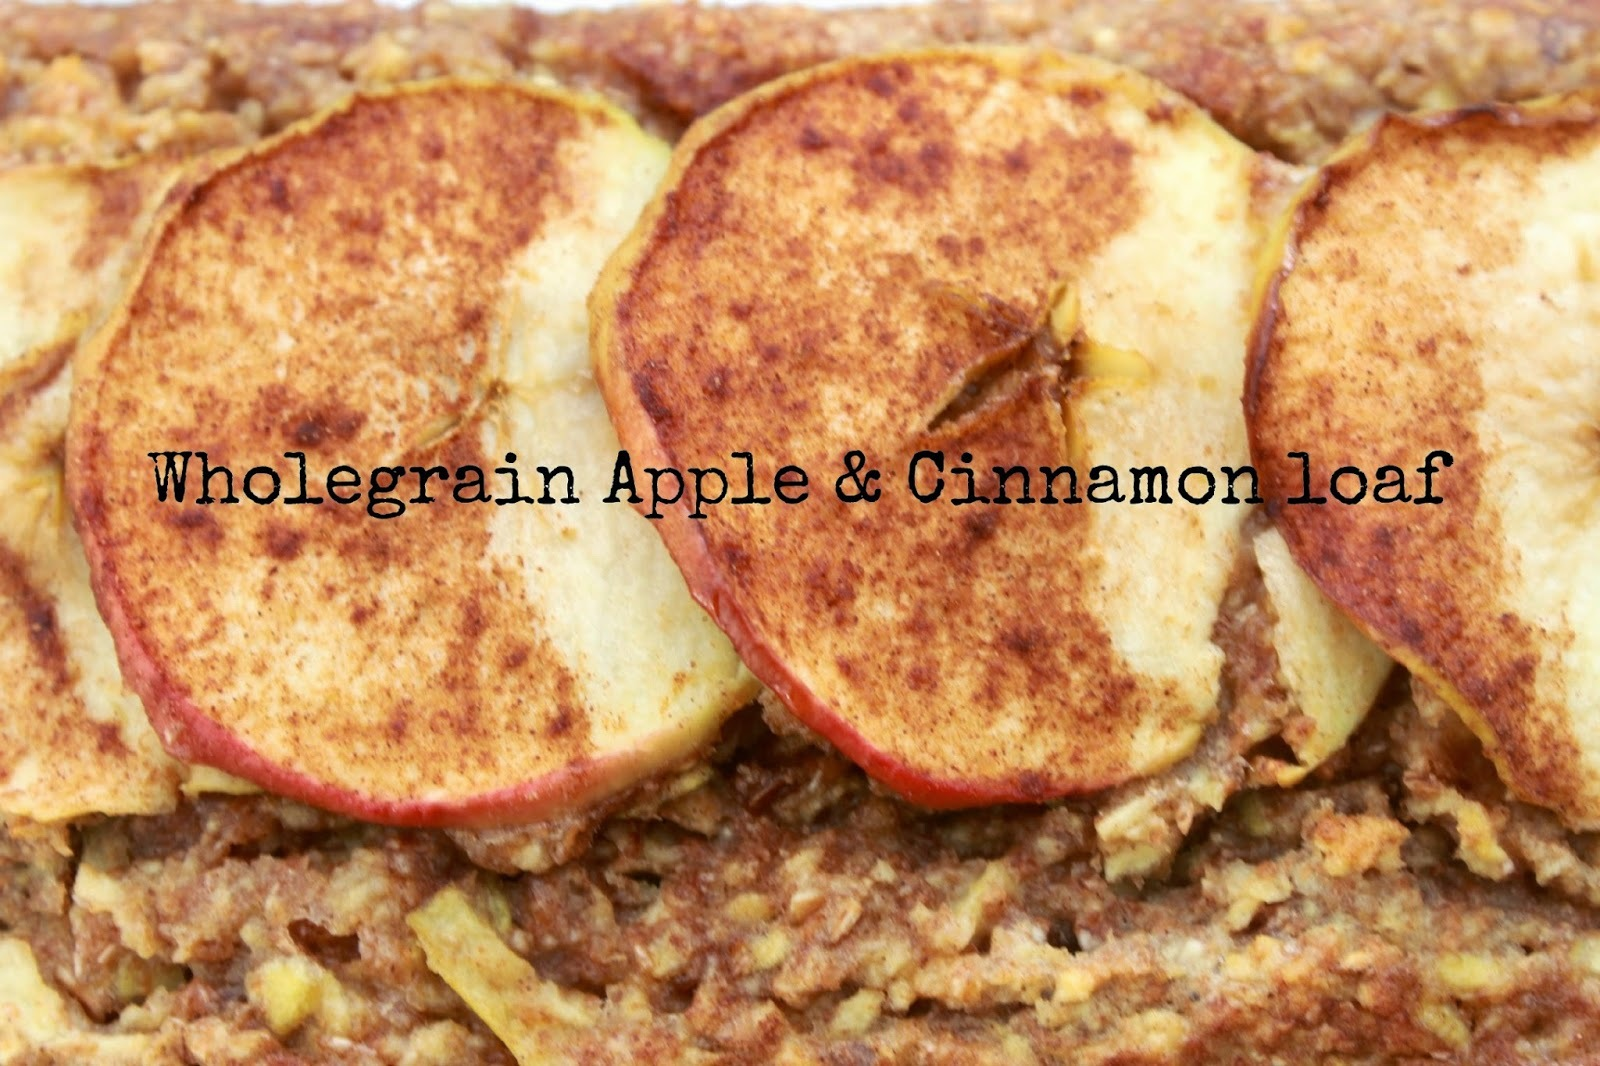 Wholegrain apple and cinnamon breakfast loaf